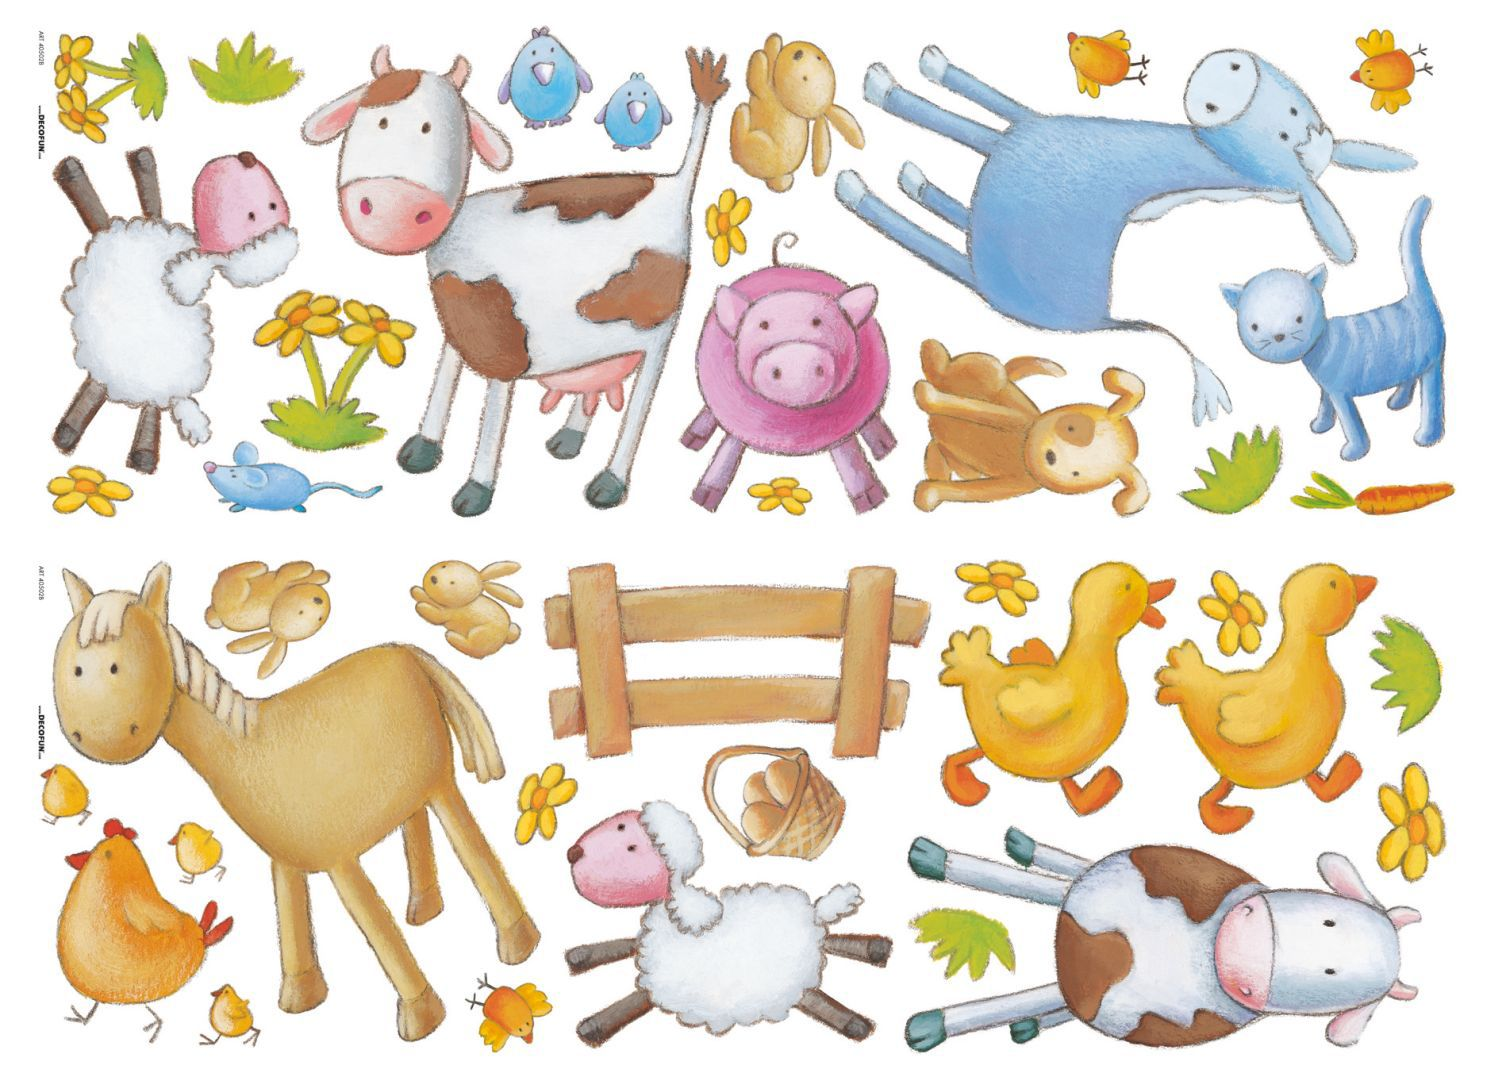 Graham & Brown Animal farm wall sticker